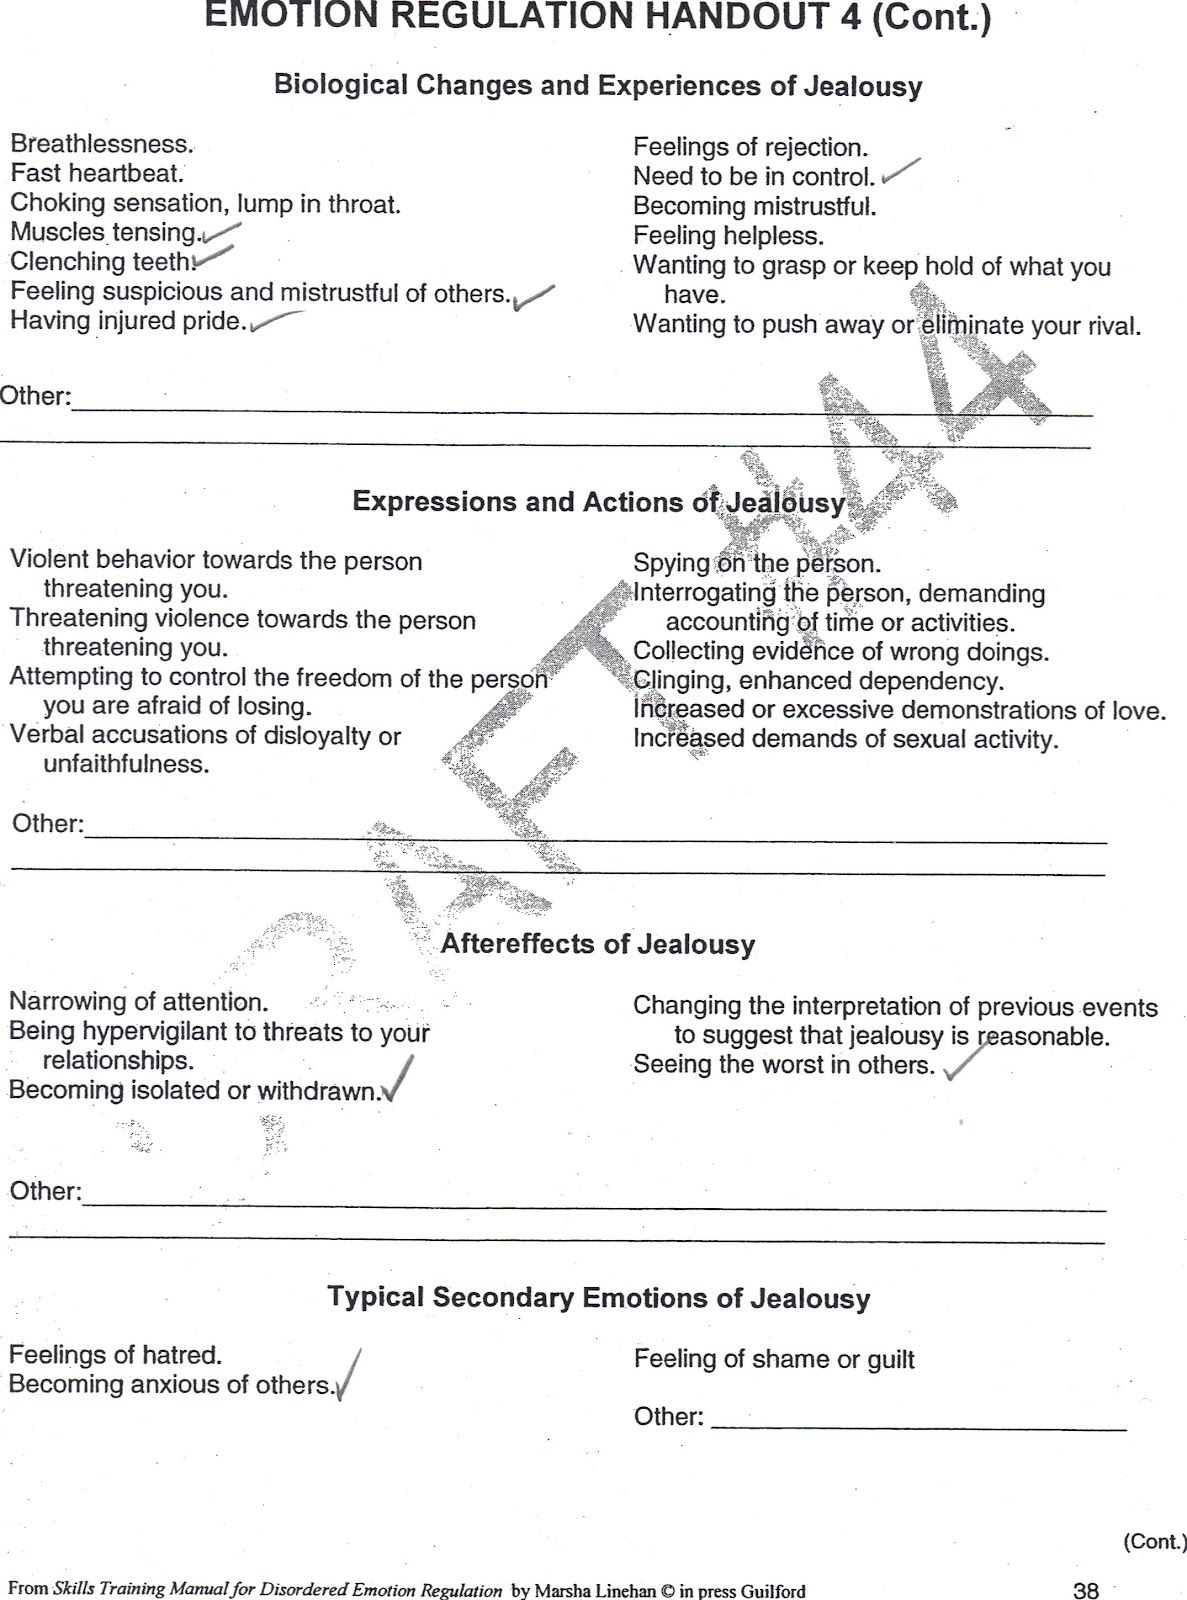 worksheet Emotional Regulation Worksheets jealousy worksheet healingfrombpd org emotion regulation handout 4 1187